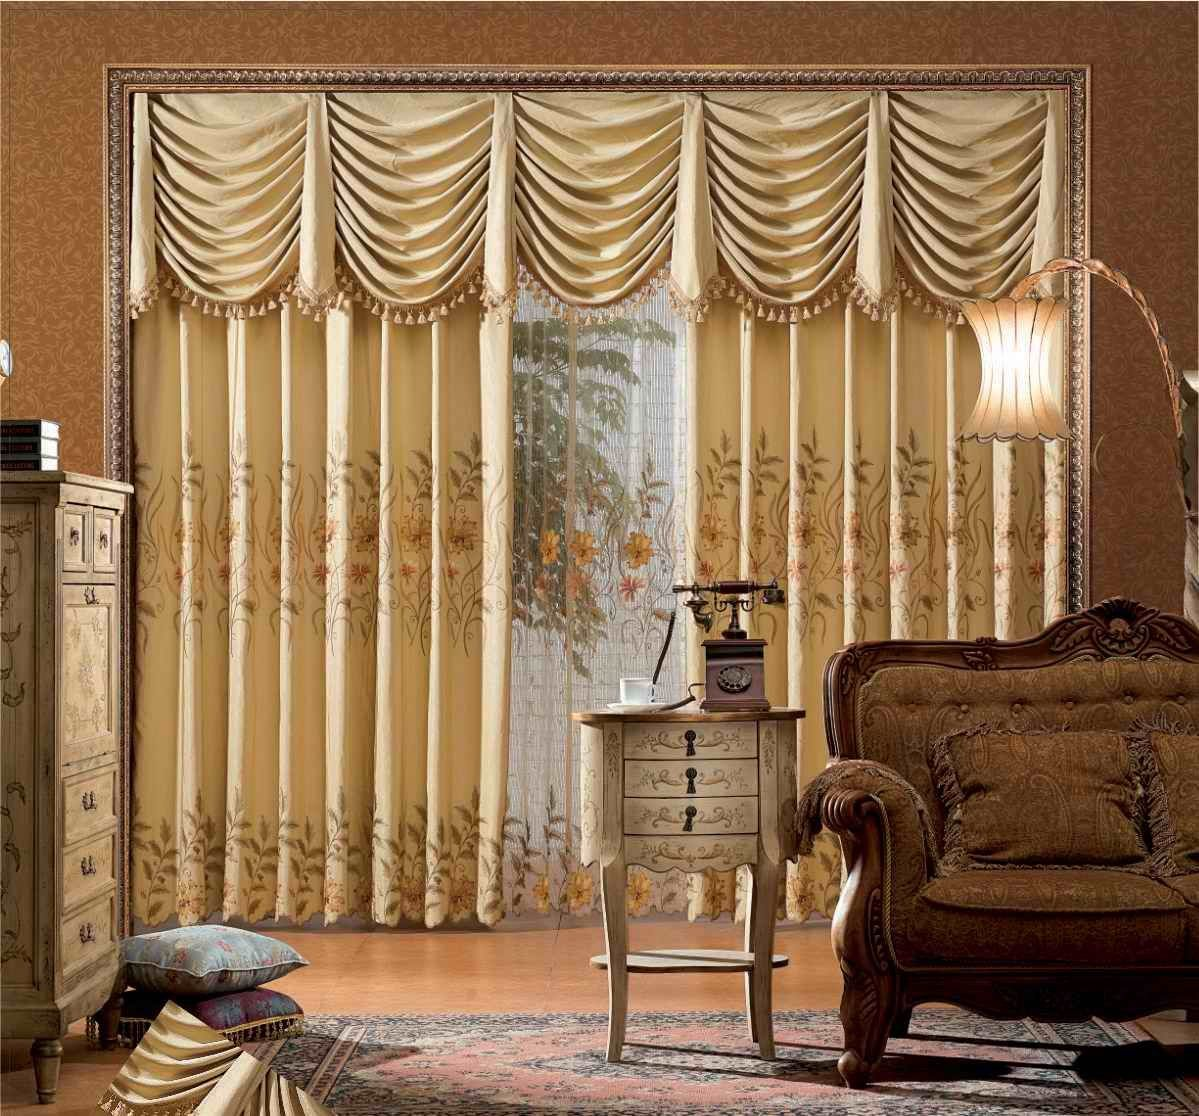 Attirant Home Design Astounding Curtains For Living Room With Brown Fabric